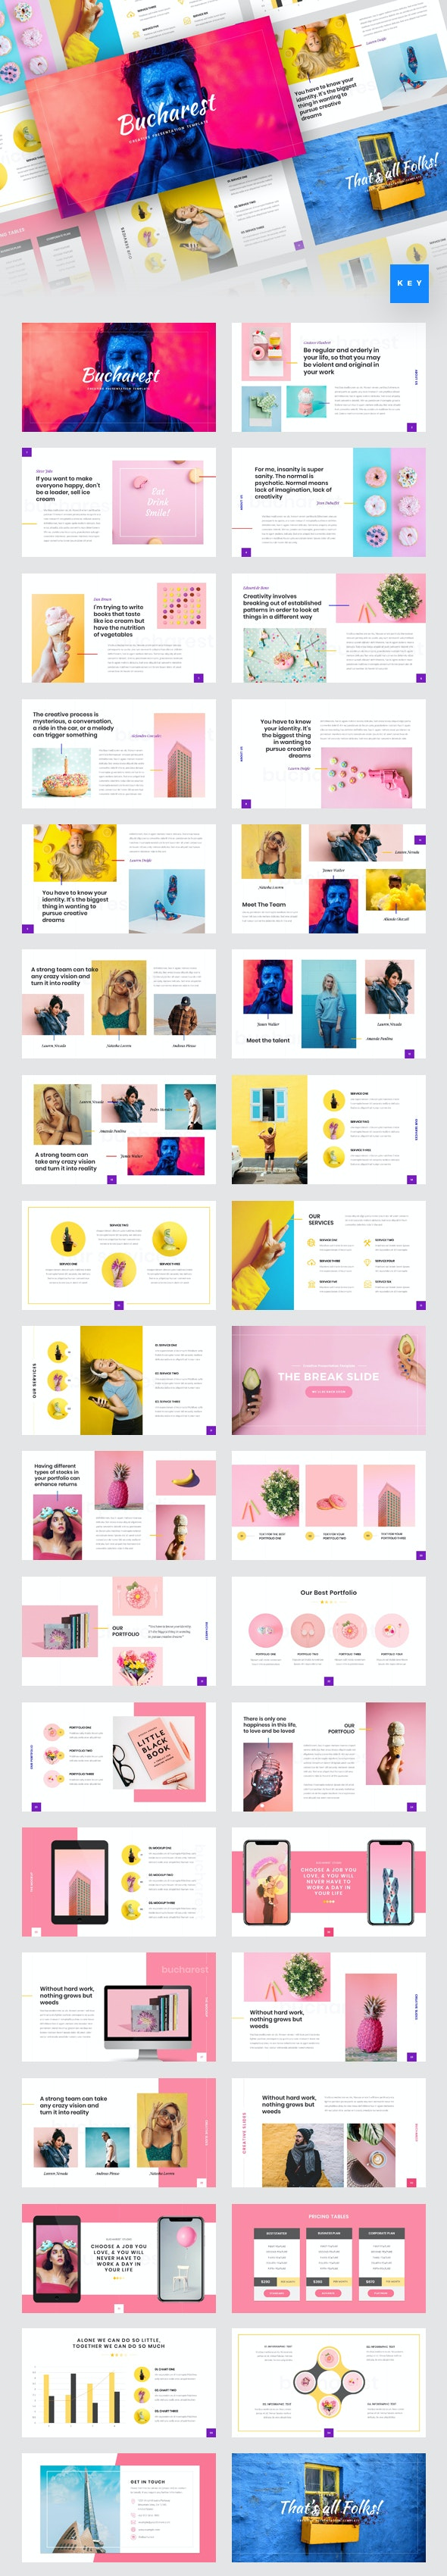 Bucharest - Creative Keynote Template - Creative Keynote Templates